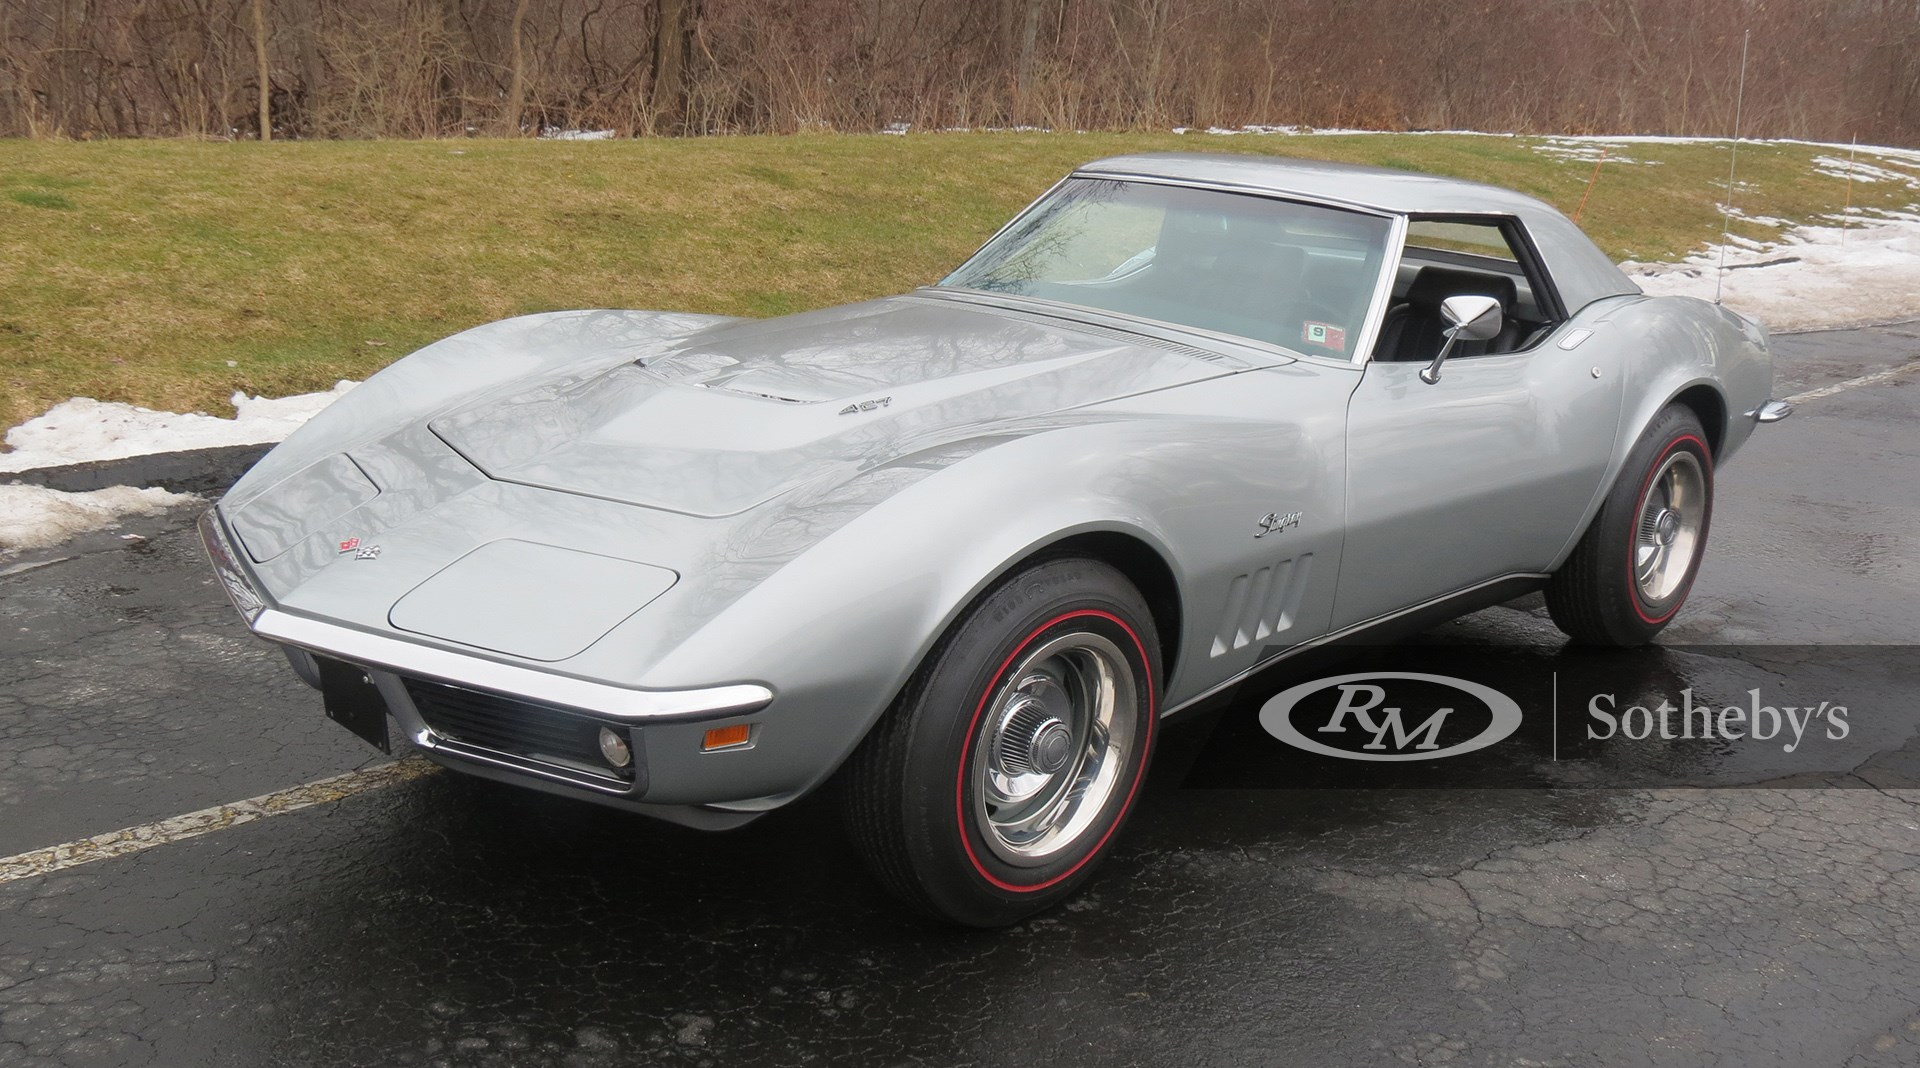 1969 Chevrolet Corvette Stingray L89 Convertible available at RM Sotheby's Online Only Open Roads April Auction 2021